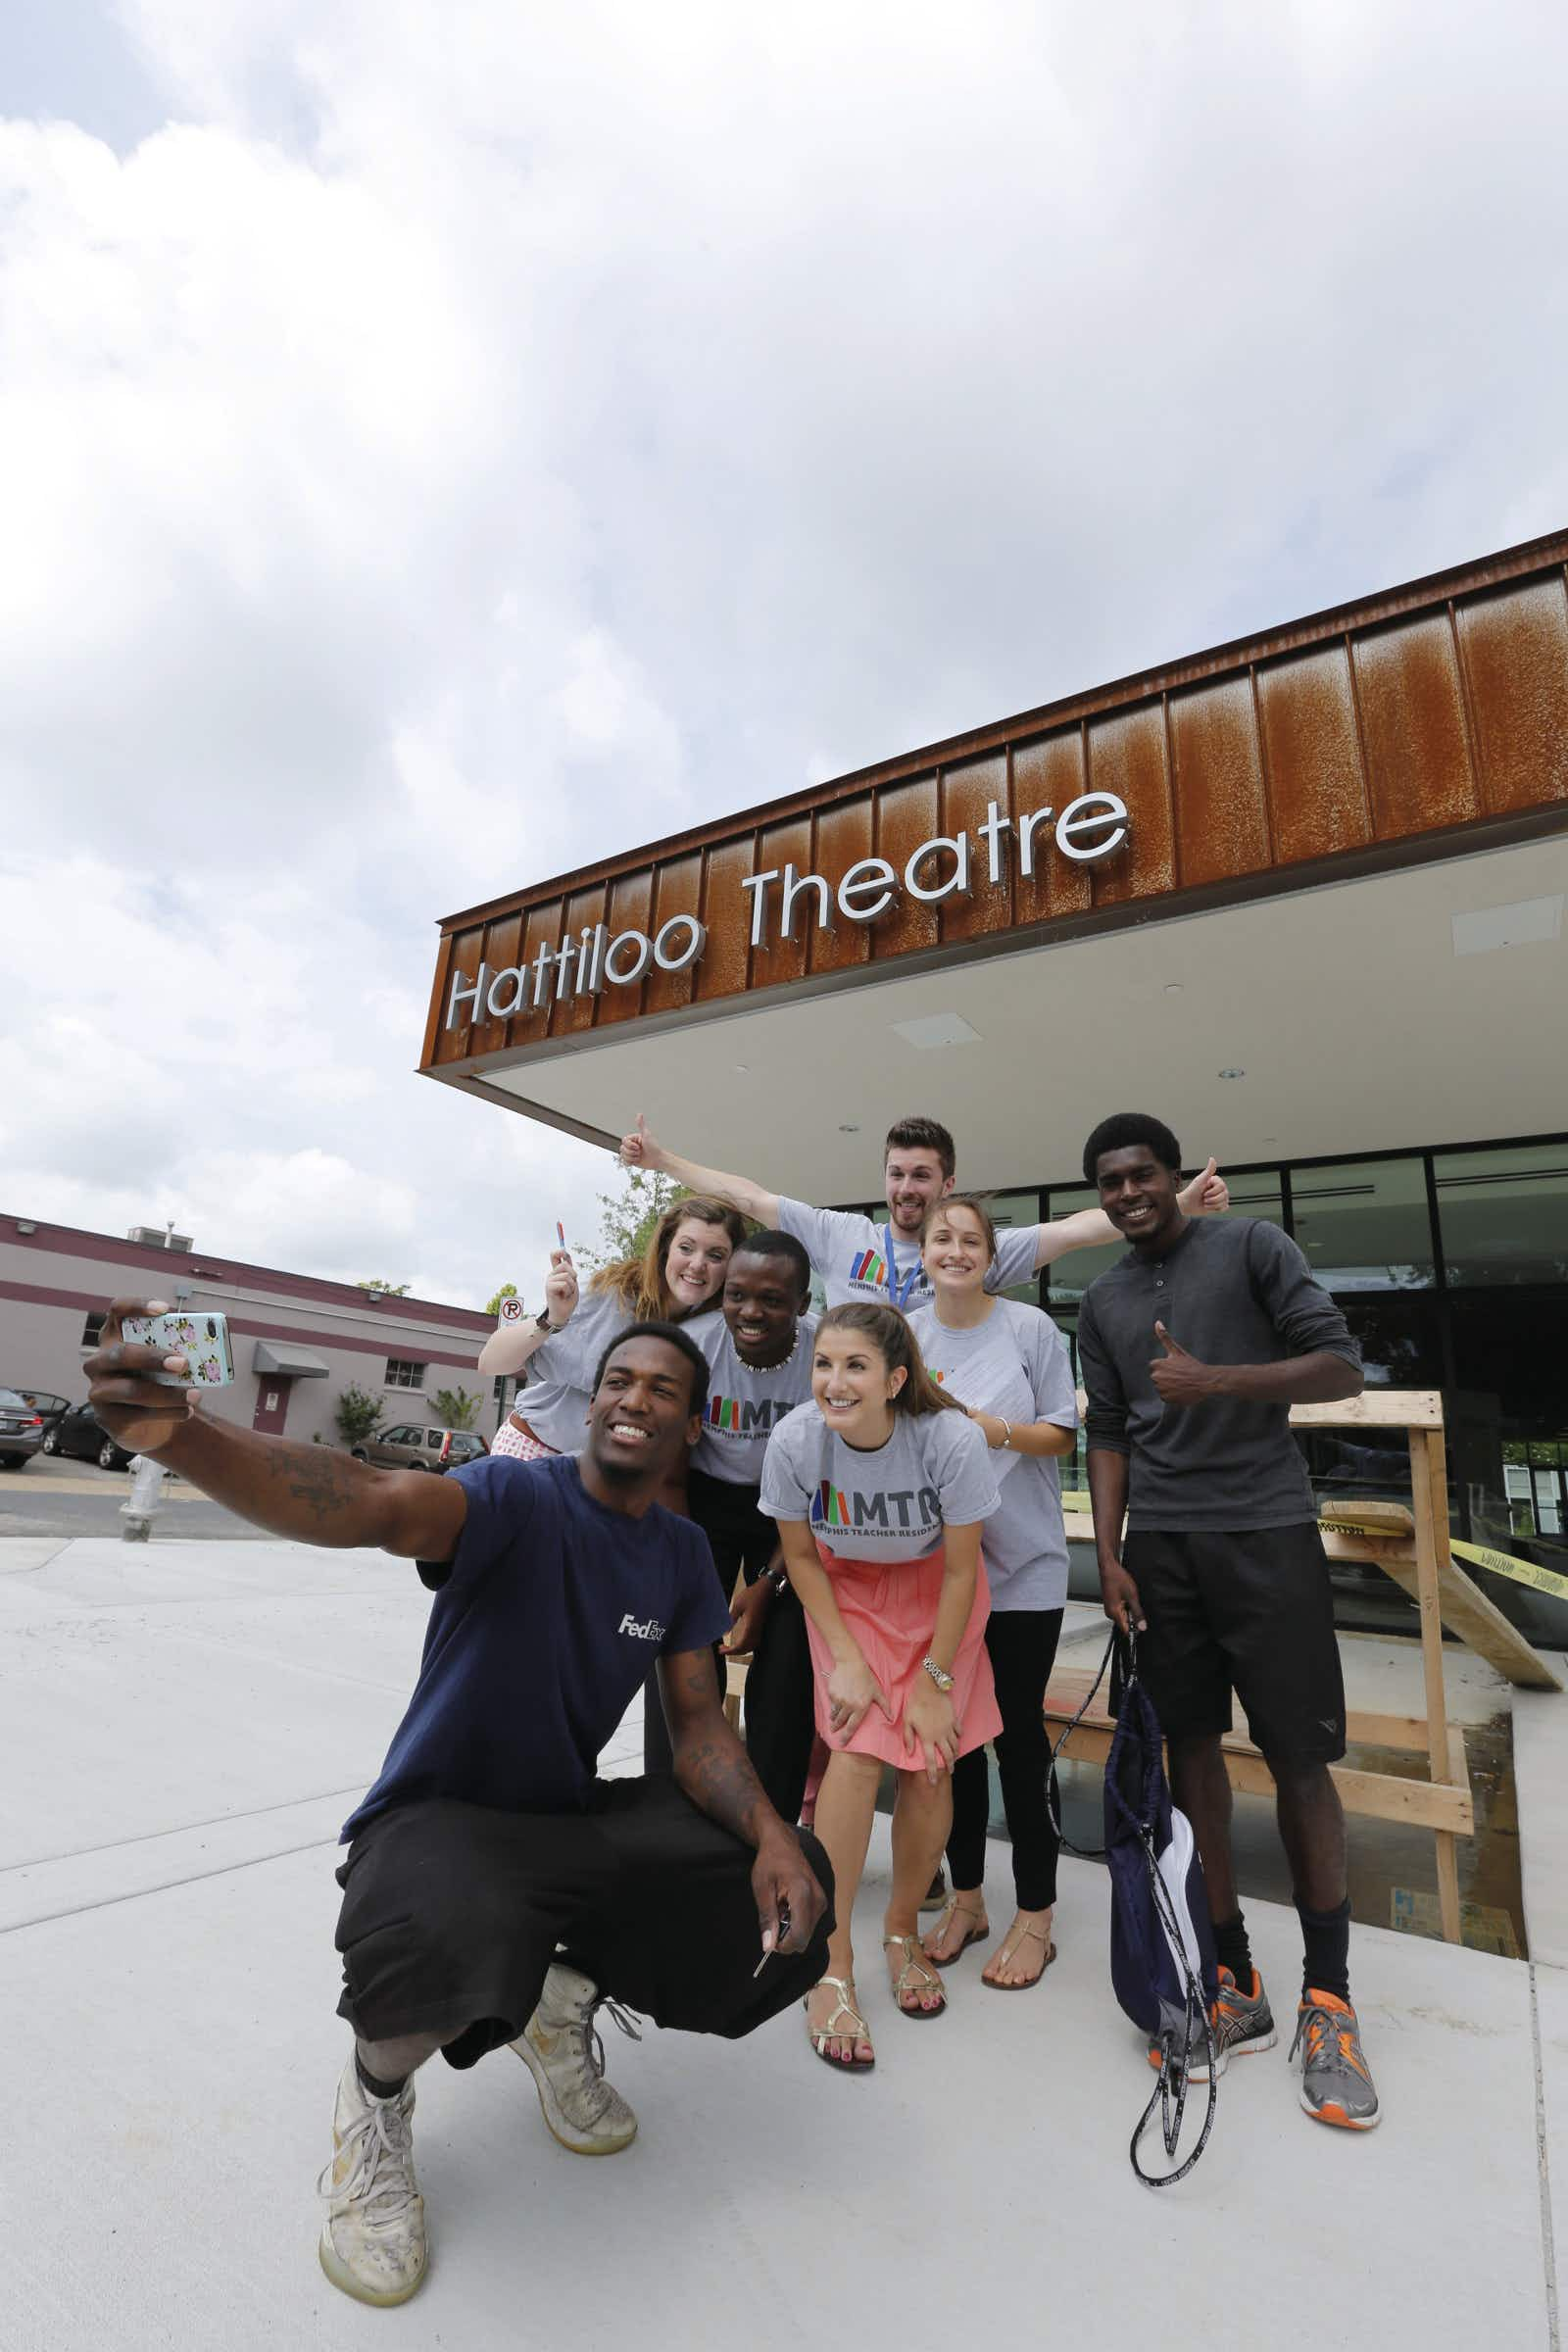 Group takes photo in front of modern-looking Hattiloo Theatre © Justin Fox Burks / Memphis Convention & Visitors Bureau